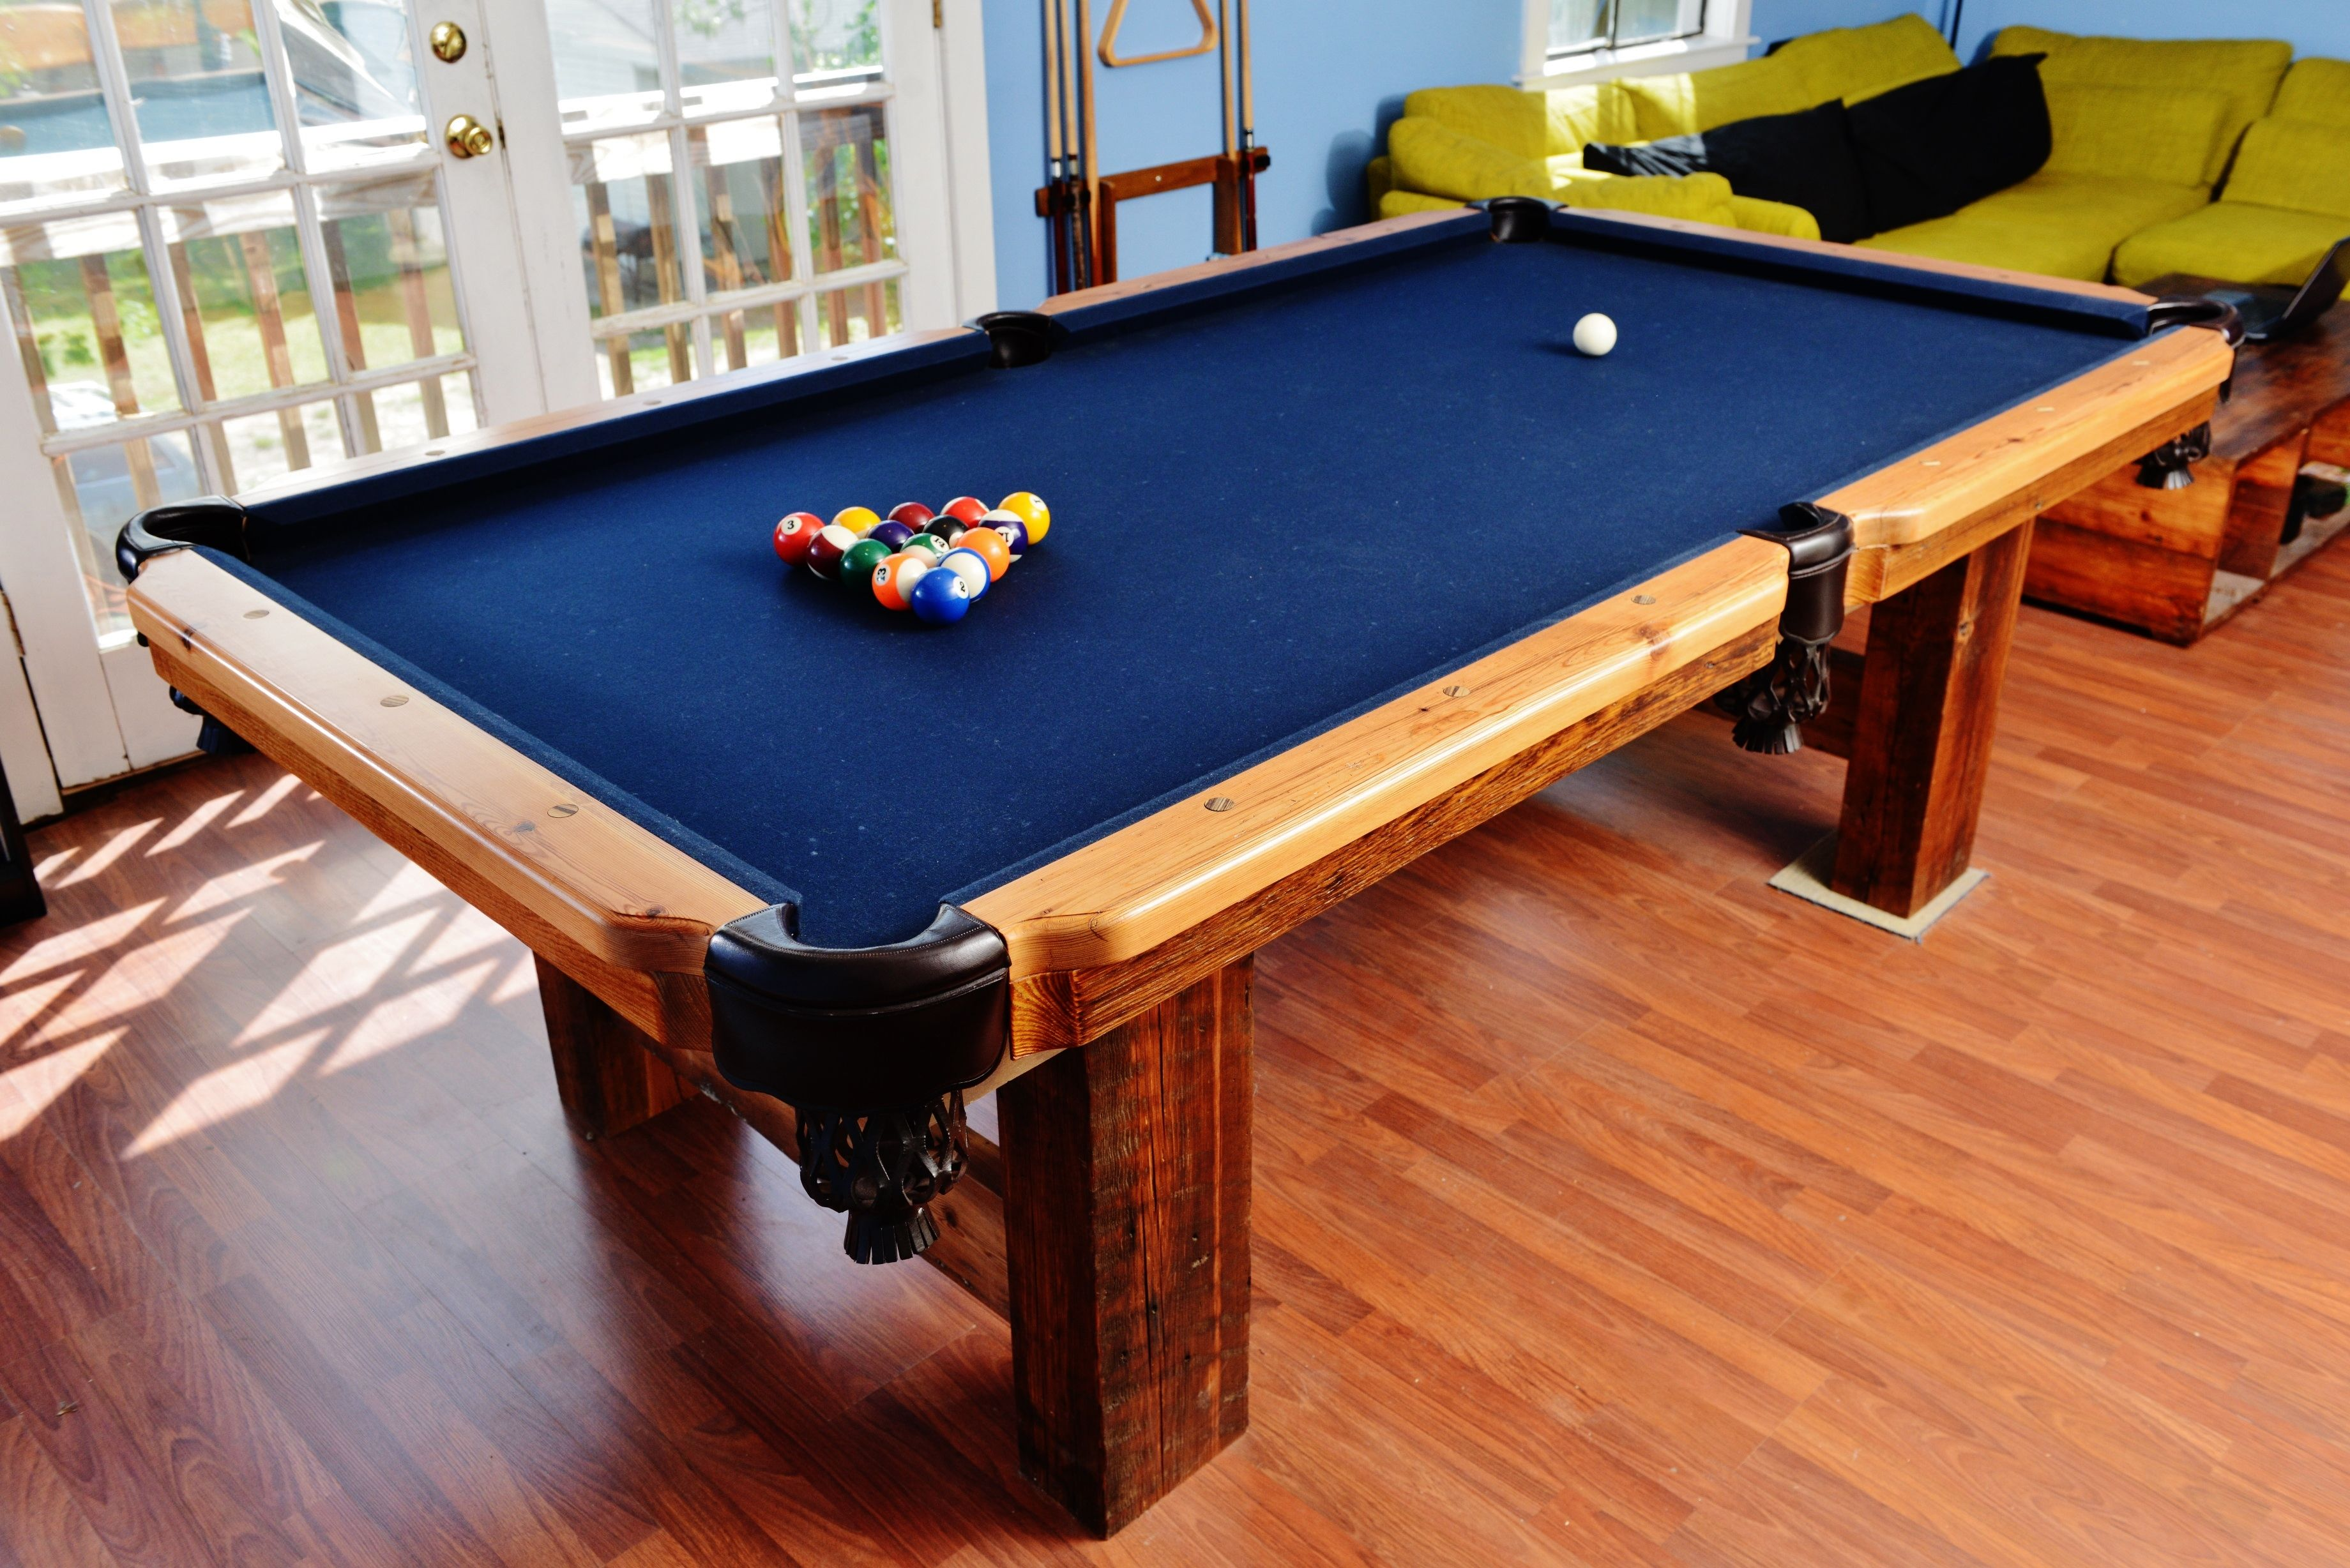 This Pool Table Is Our Pride And Joy, Made Of Some Of The Best Wood